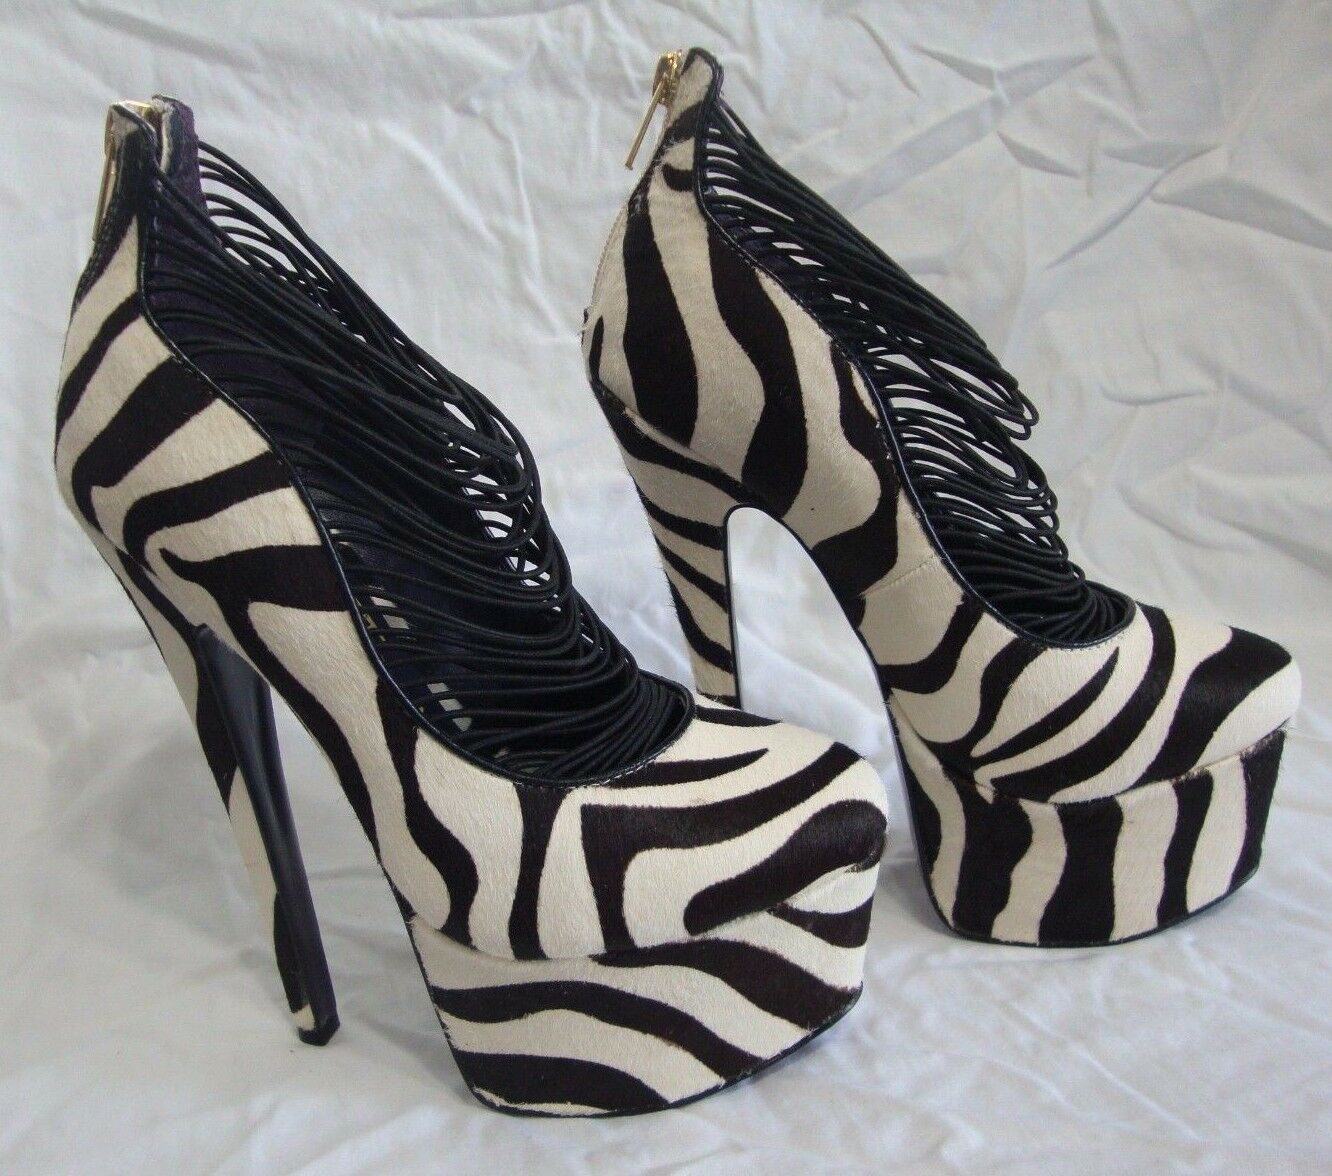 London Trash 6 Zebra Stripe Pony Hair Platform Heels sz 6 Trash Leder Pinup Rockabilly 8efccf